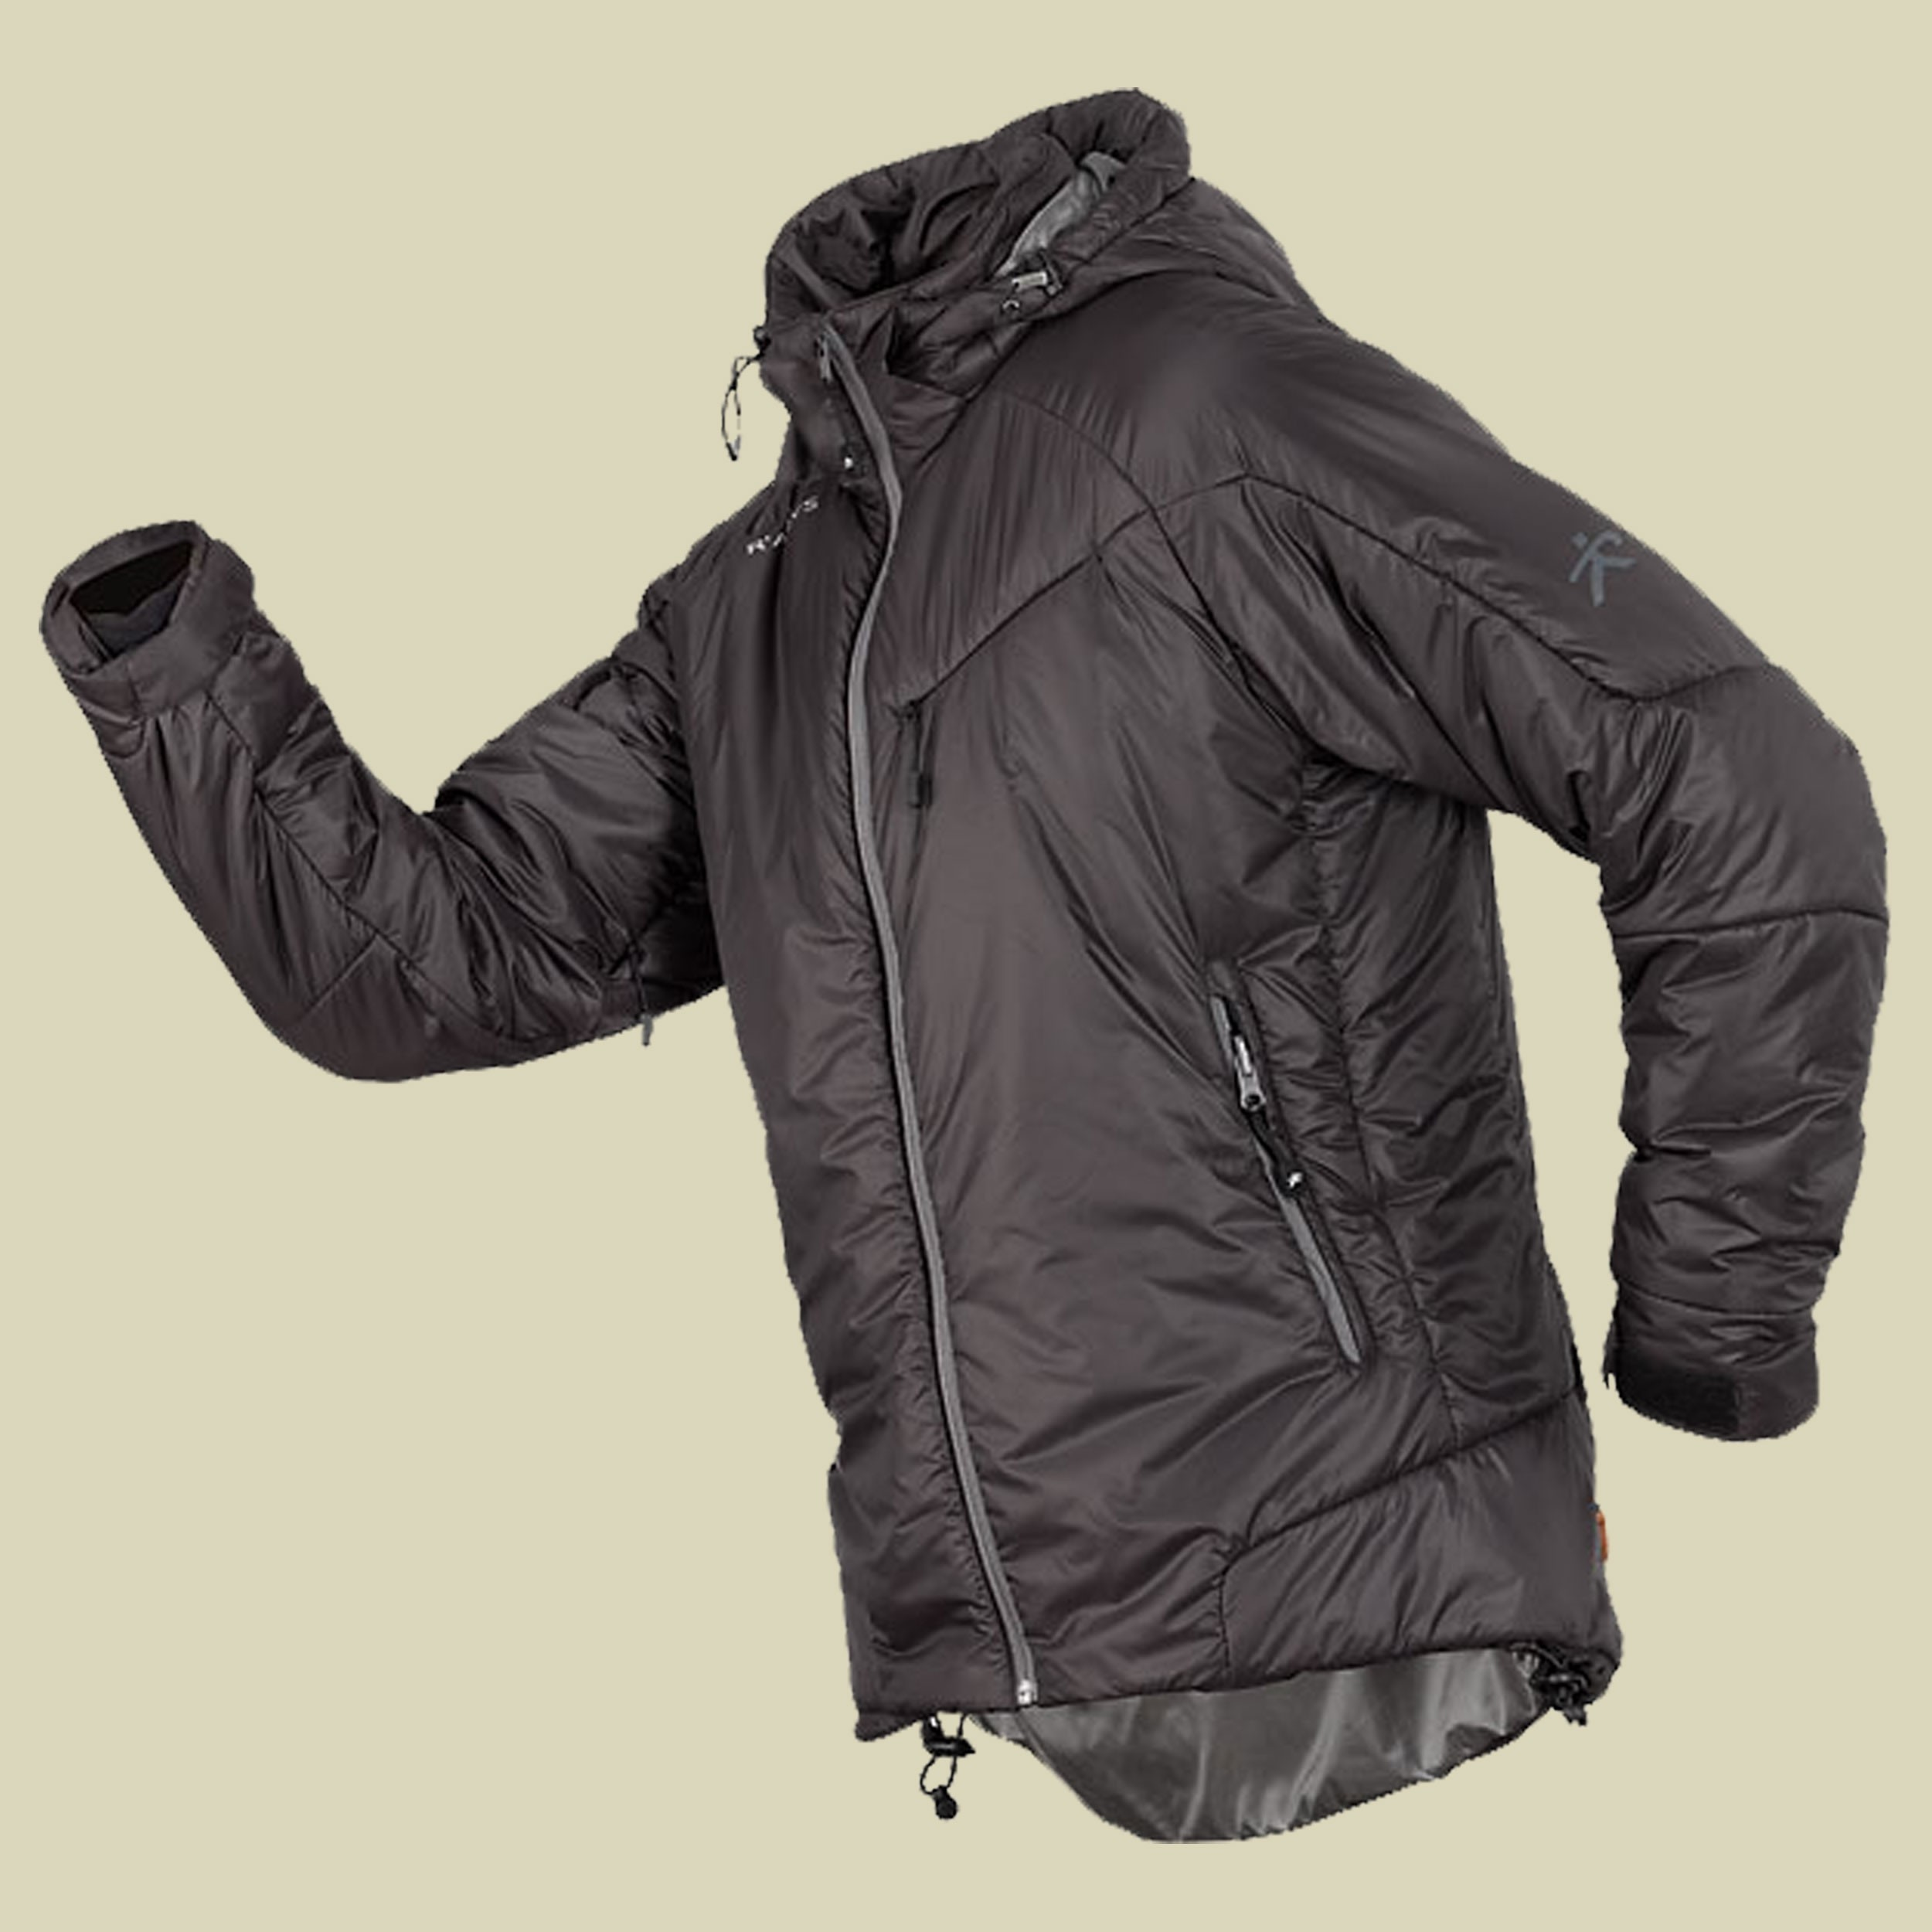 R 5 Insulated Jacket Men